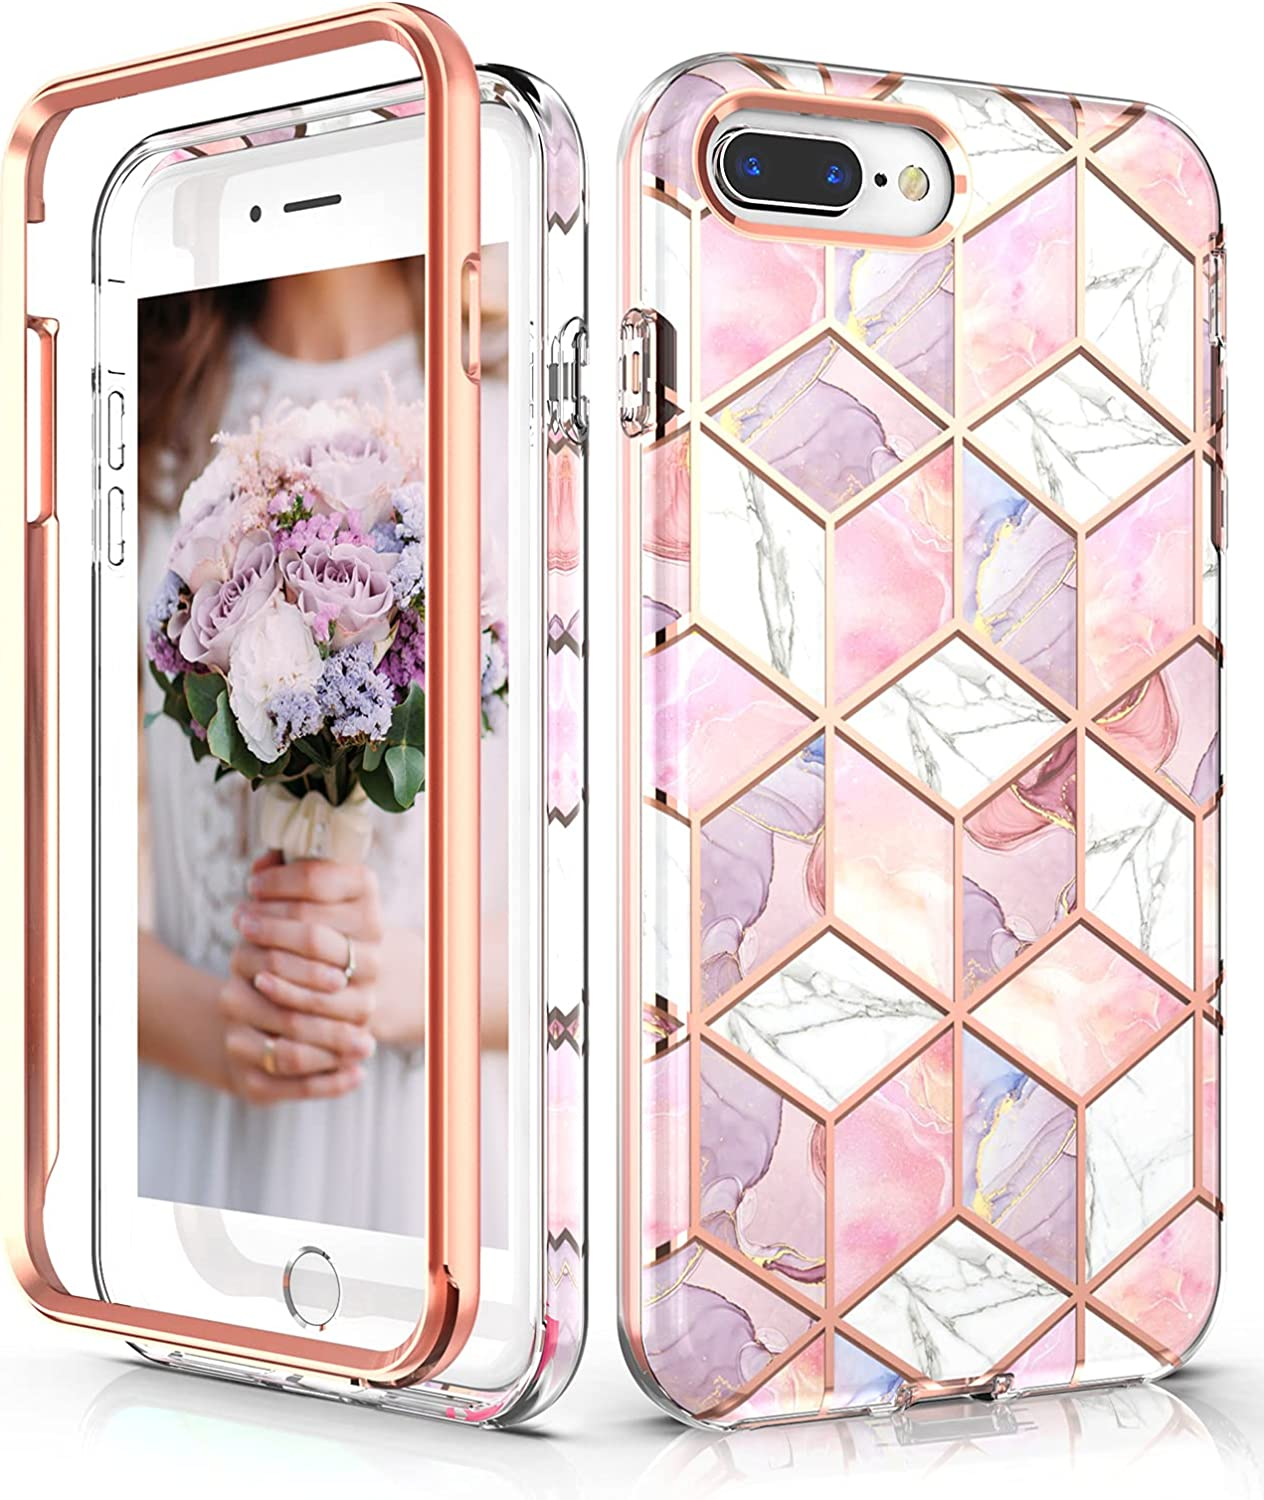 Hasaky Case for iPhone 8 Plus Case iPhone 7 Plus Case iPhone 6/6s Plus Case,Dual Layer Hybrid Bumper Cute Girls/Women Marble Design Soft TPU+Hard Back Shockproof Protective Phone Case -Pink/Rose Gold